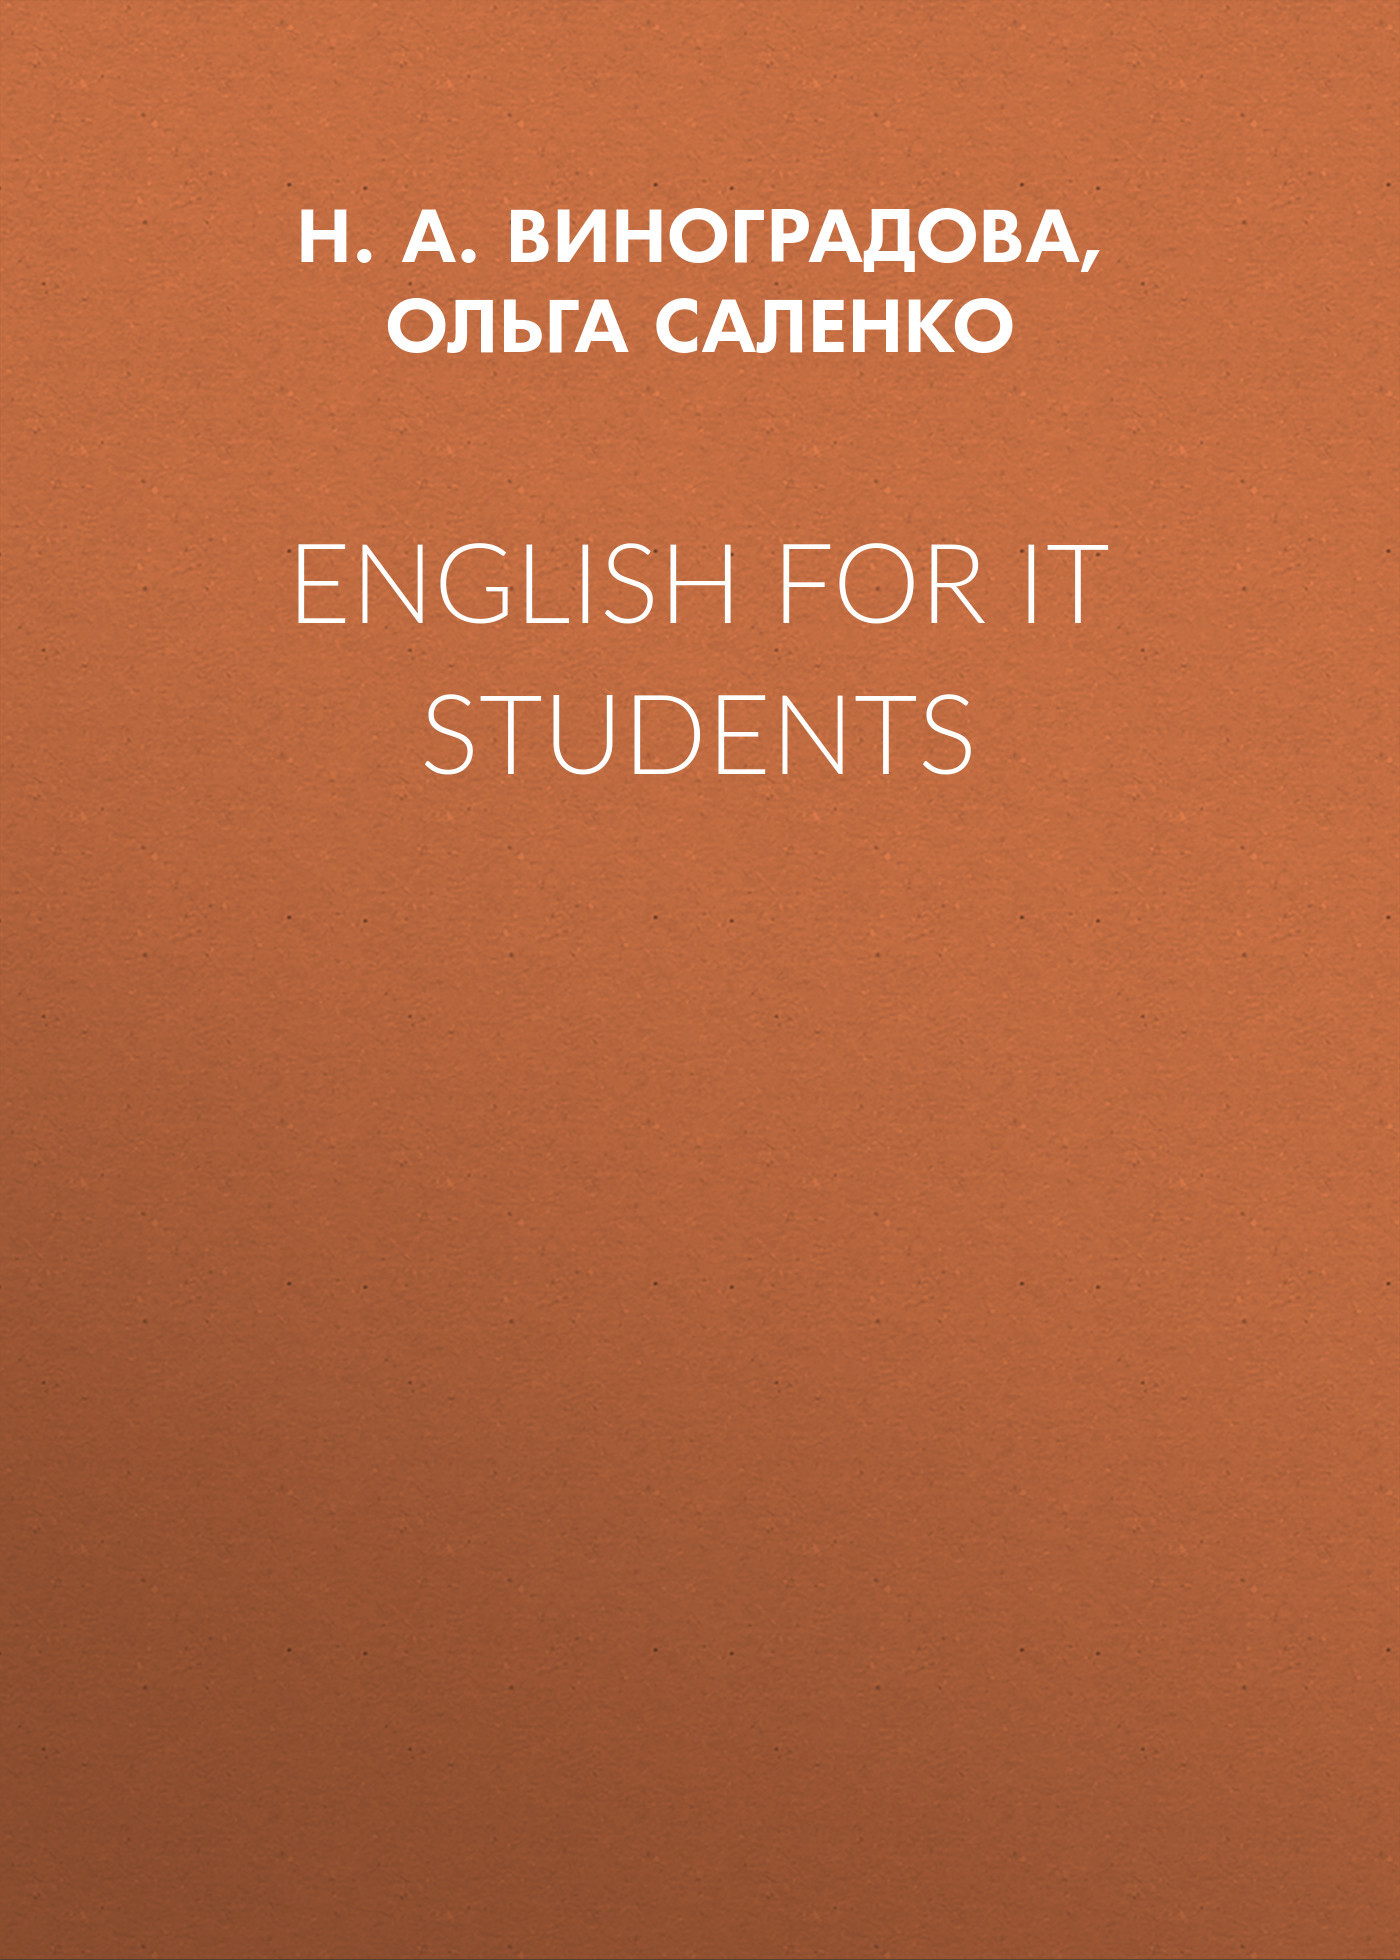 English for It Students